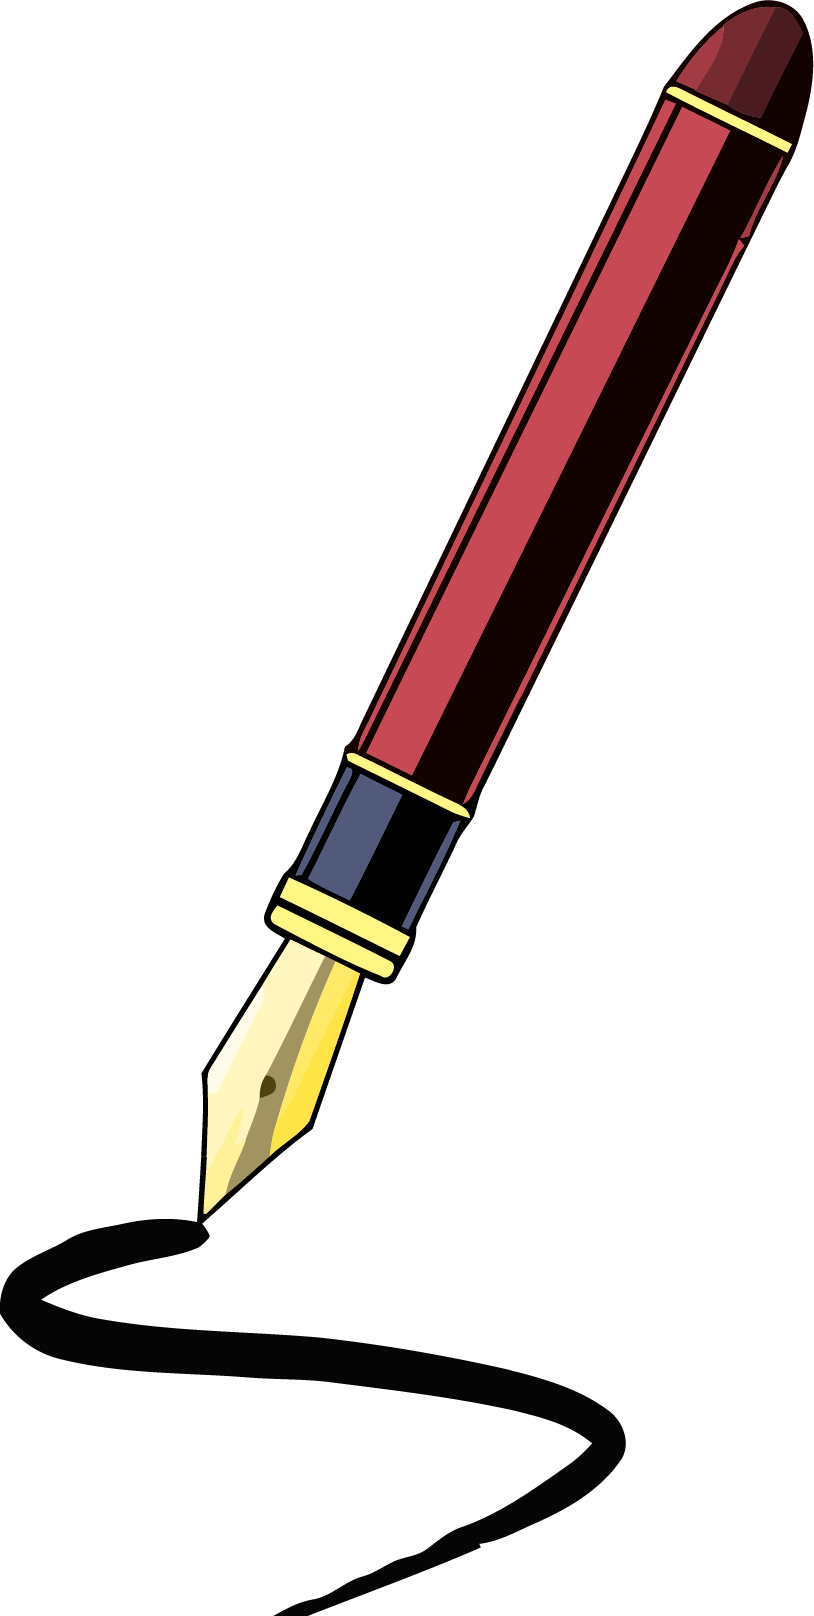 Pencil clipart png. Fancy pen clipartly comclipartly